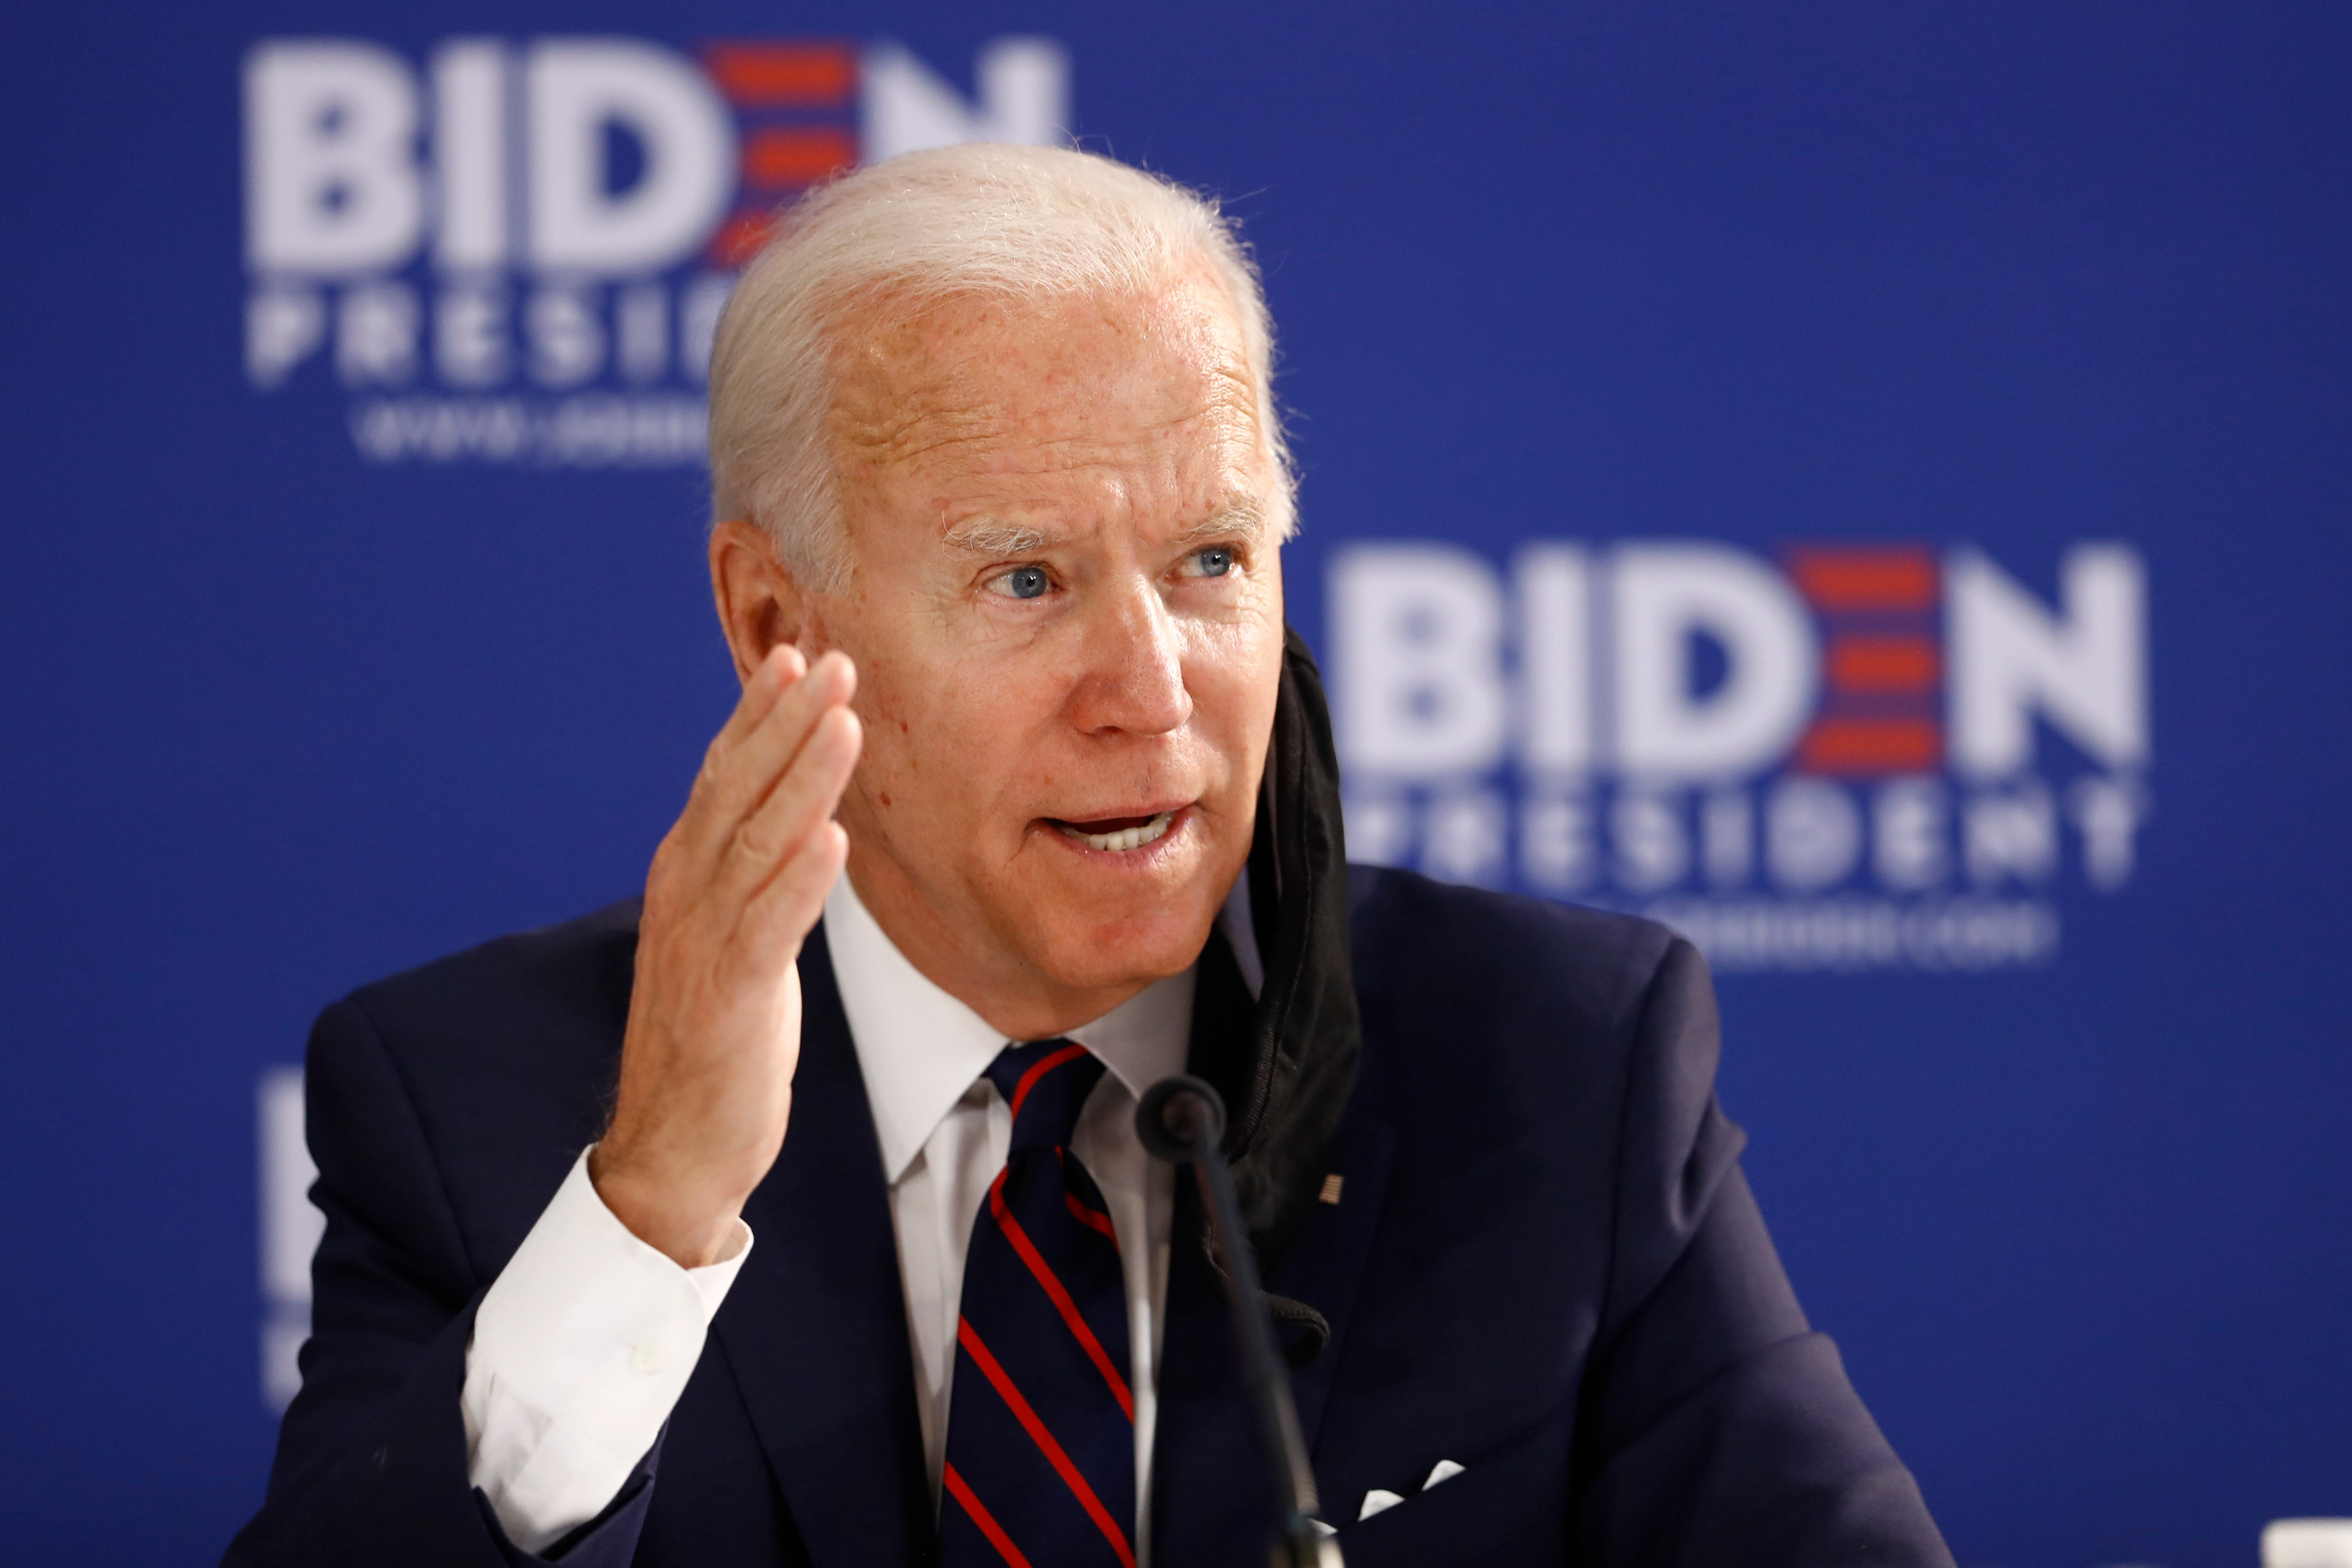 How To Beat Donald Trump And Make Sure The Next President Is Joe Biden